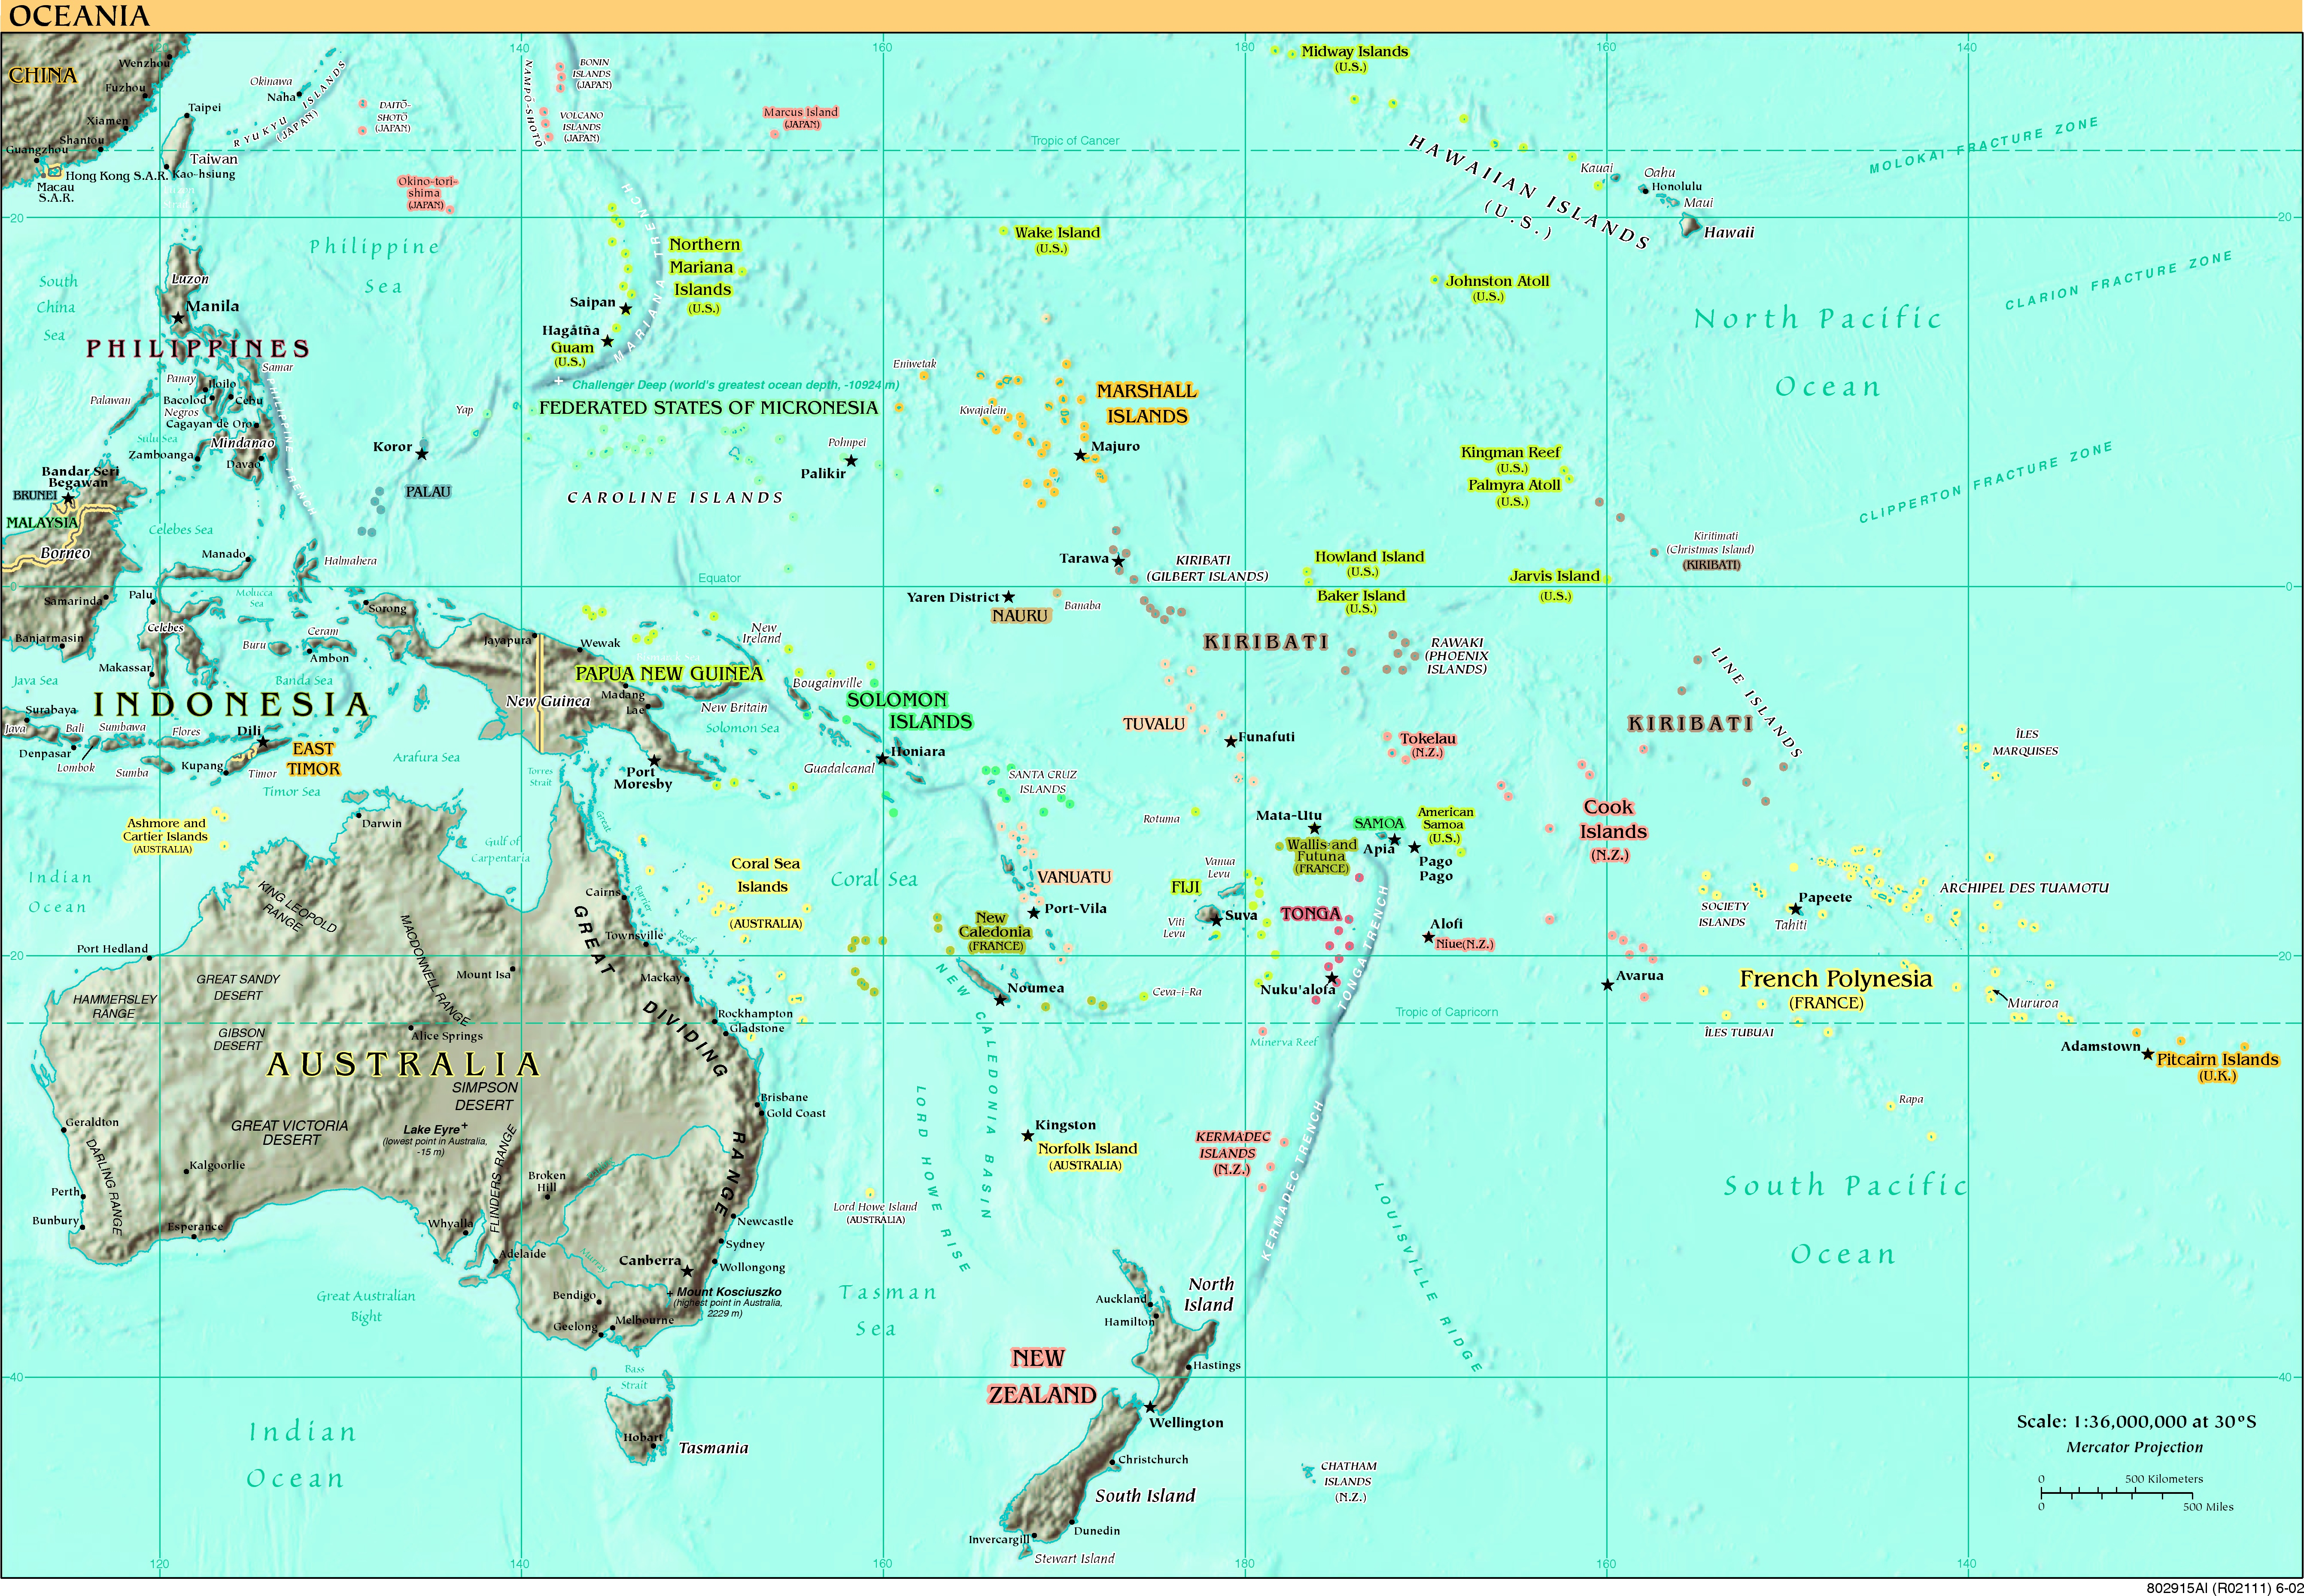 ... - Oceania Political Map Oceania Country Map Oceania Map With Country